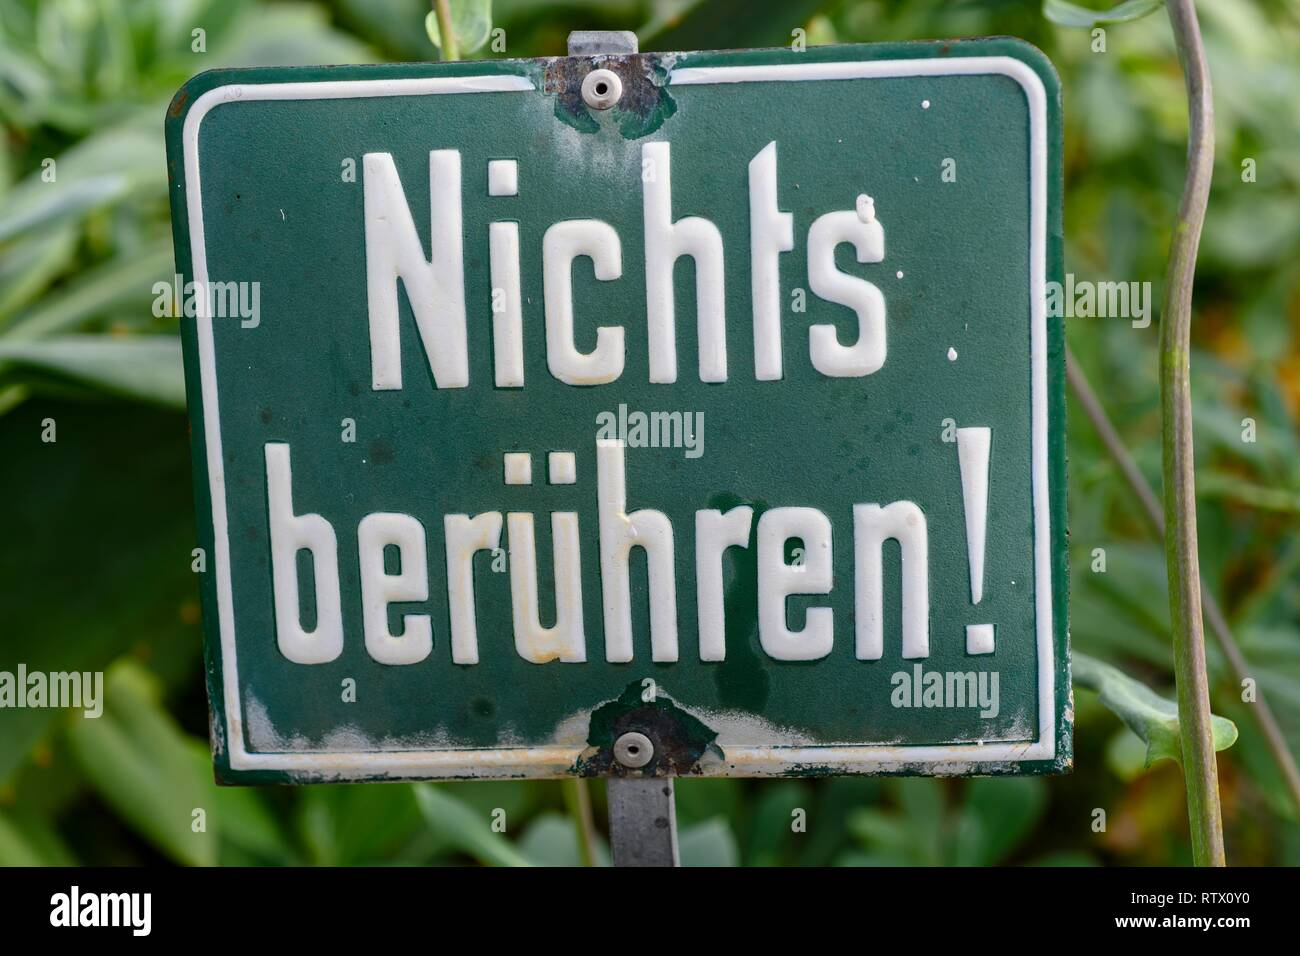 Prohibition sign, Touch nothing, Writing on sign, Germany - Stock Image